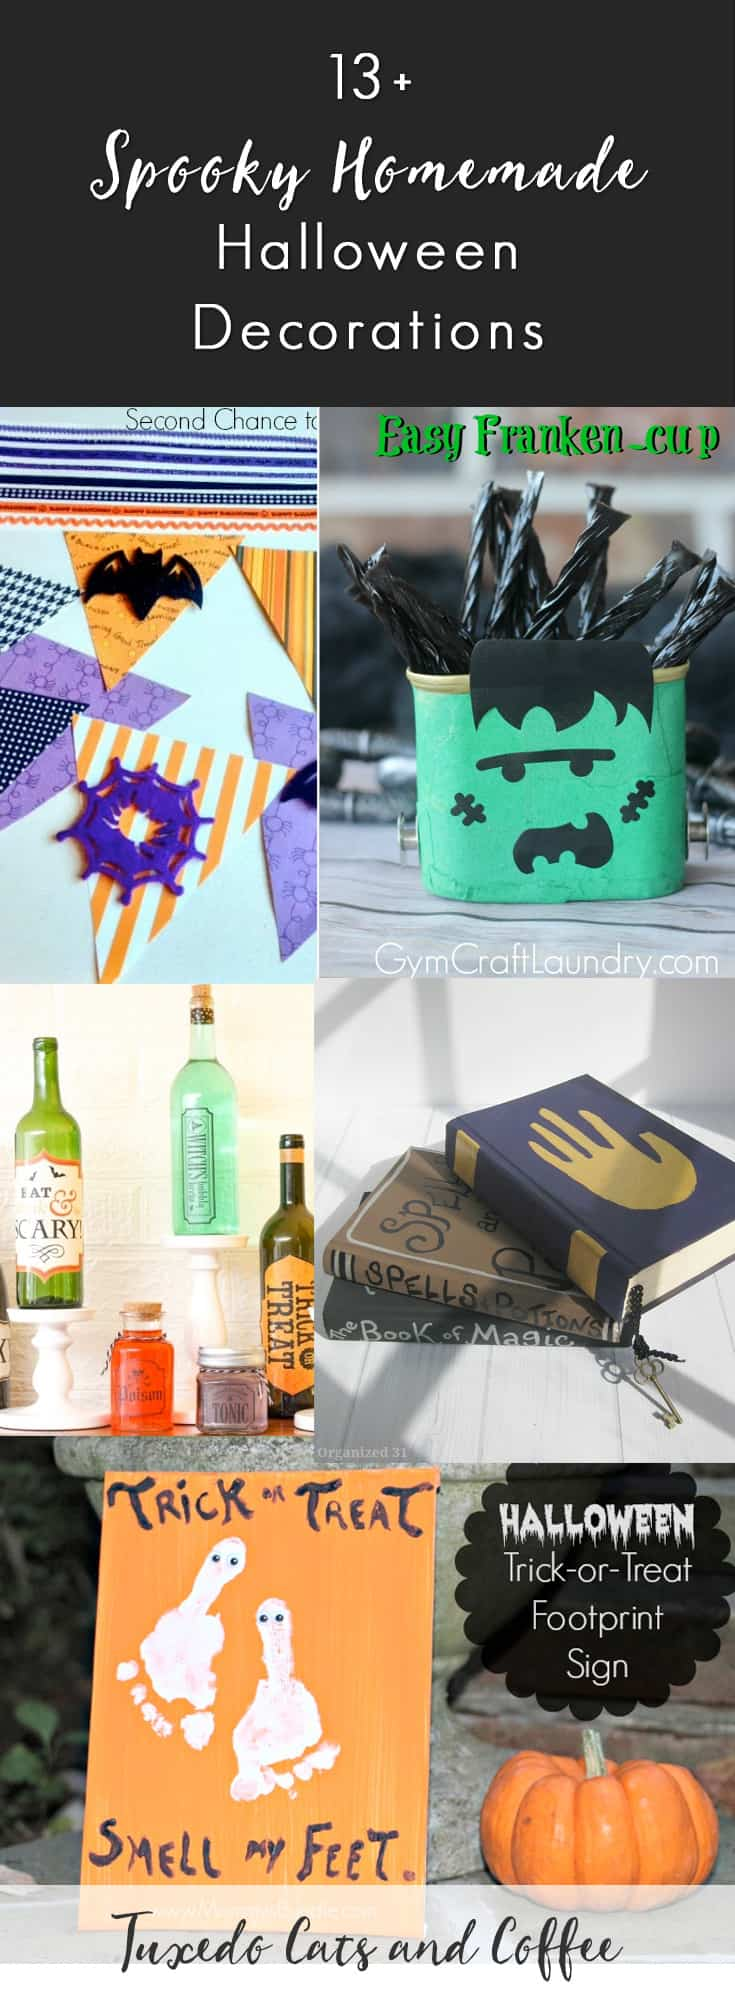 Halloween is coming up soon and it's a great time to decorate! These 13+ spooky homemade Halloween decorations will help you decorate the inside and outside of your home for Halloween without breaking the bank. There are Halloween decorations with spiders, ghosts, witches, pumpkins, garlands, chandeliers, and more!